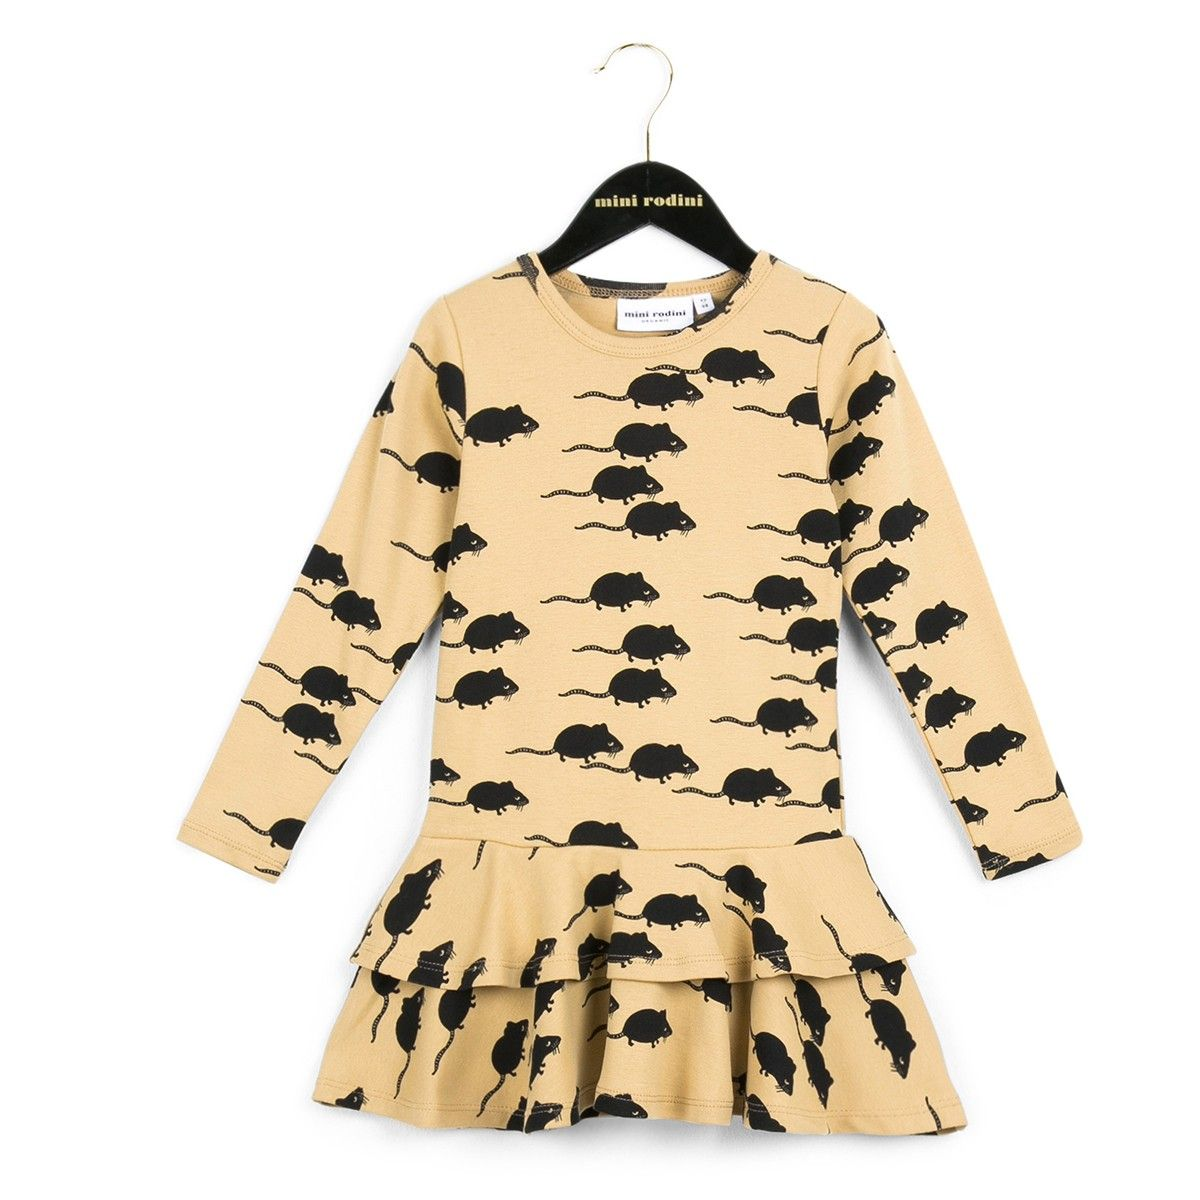 Beige dress with mouse print